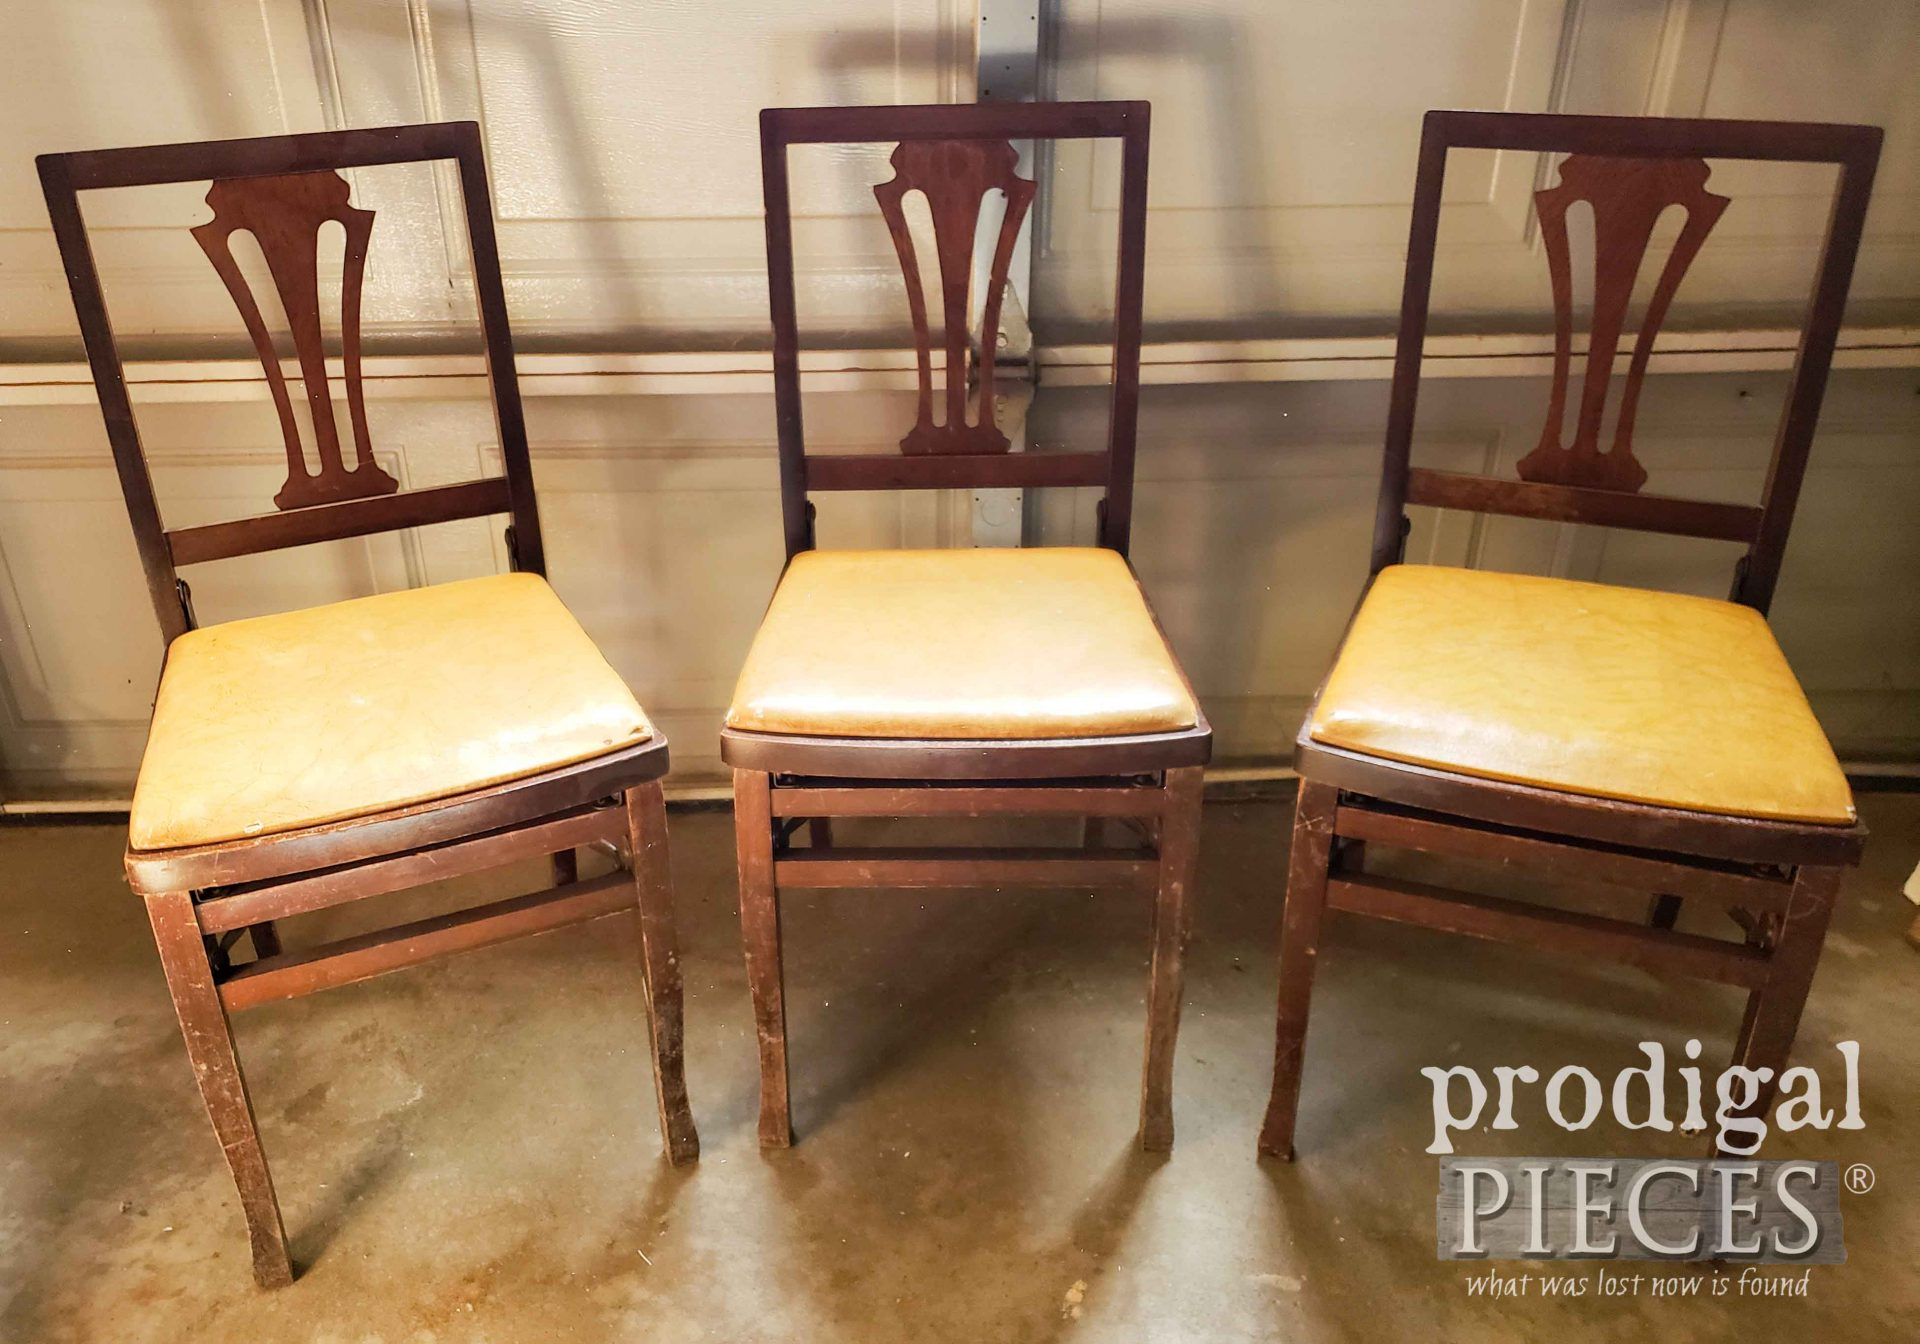 Vintage Folding Chairs Before Makeover by Larissa of Prodigal Pieces | prodigalpieces.com